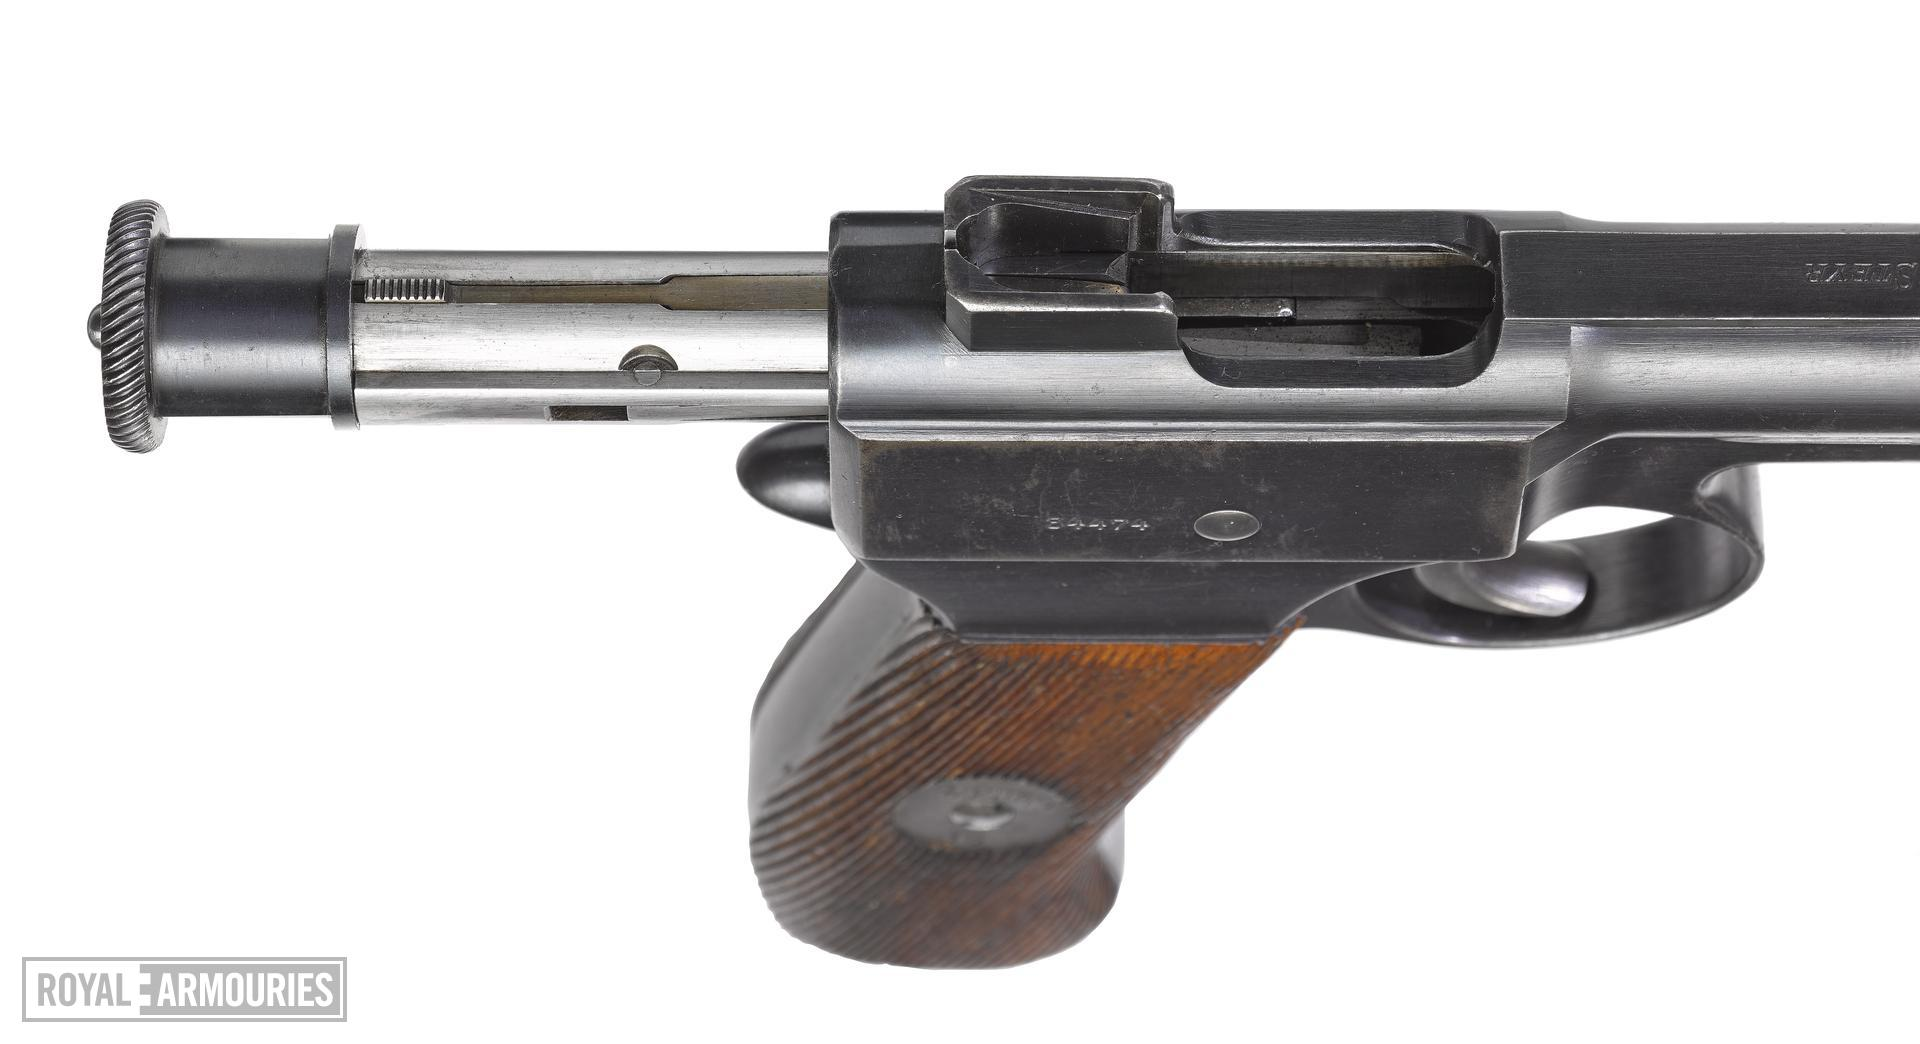 Roth Steyr Model 1907 centrefire self loading pistol, Austria